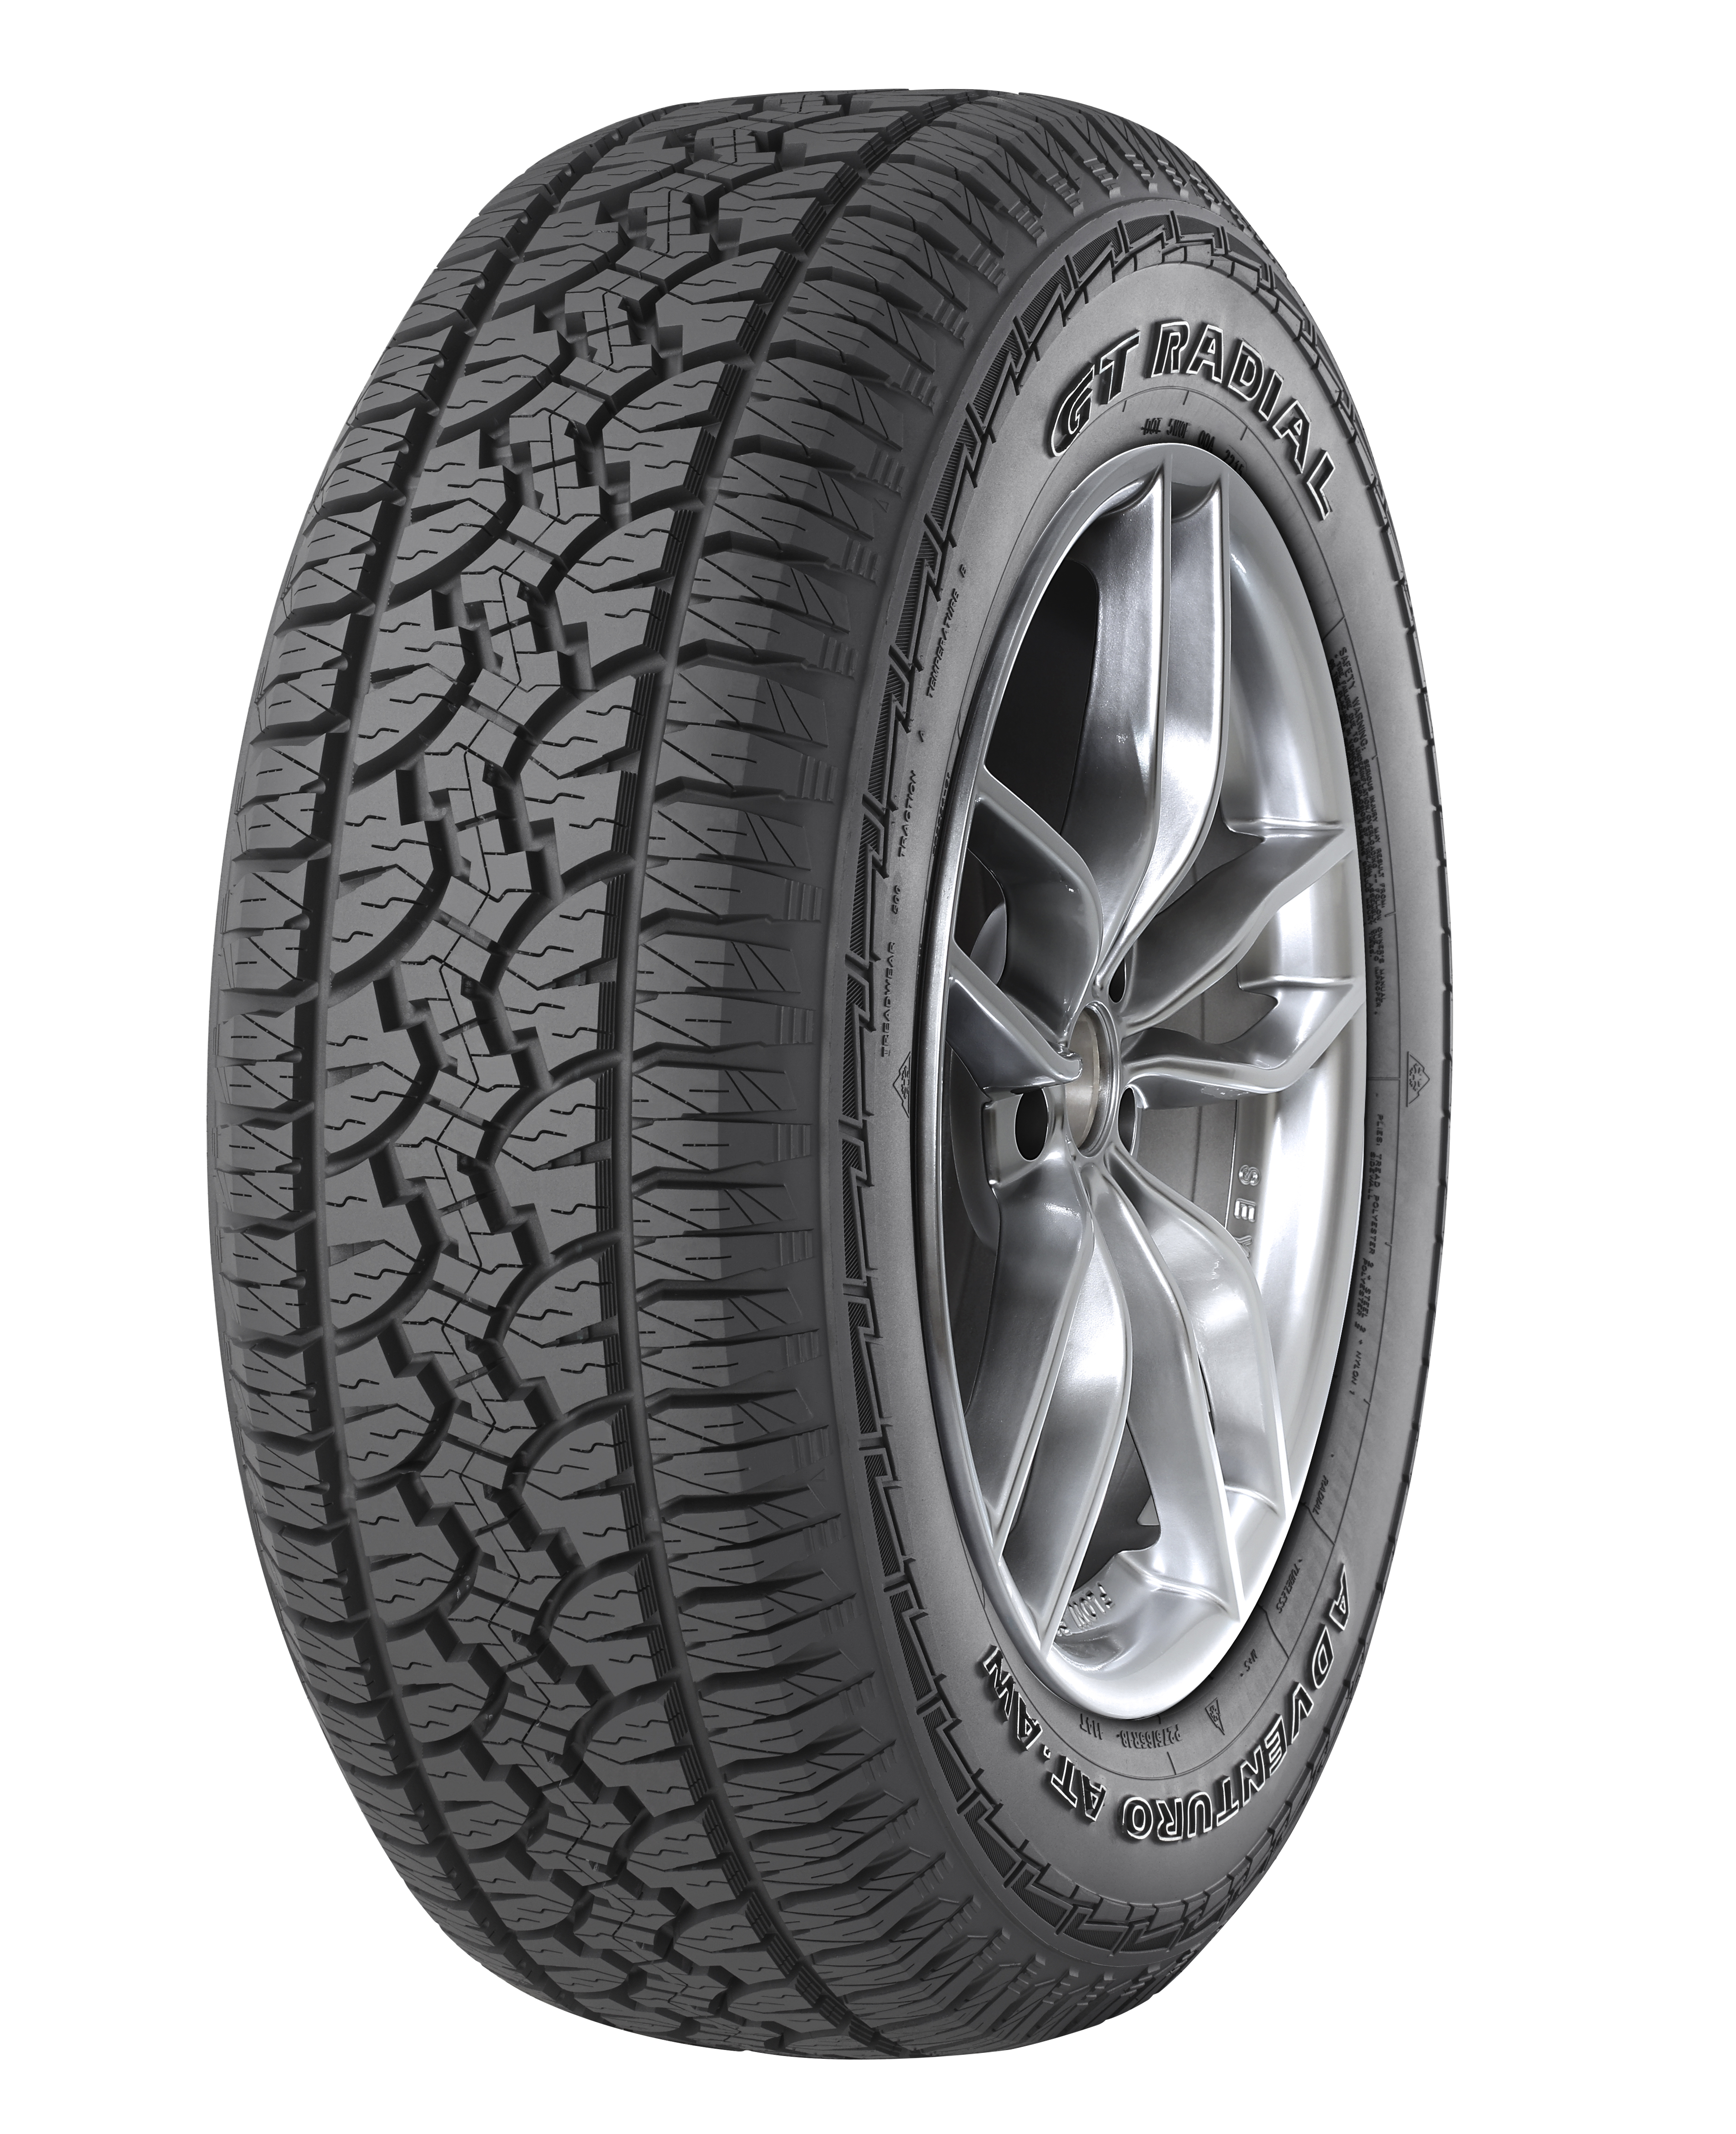 Car Tires and Truck Tires